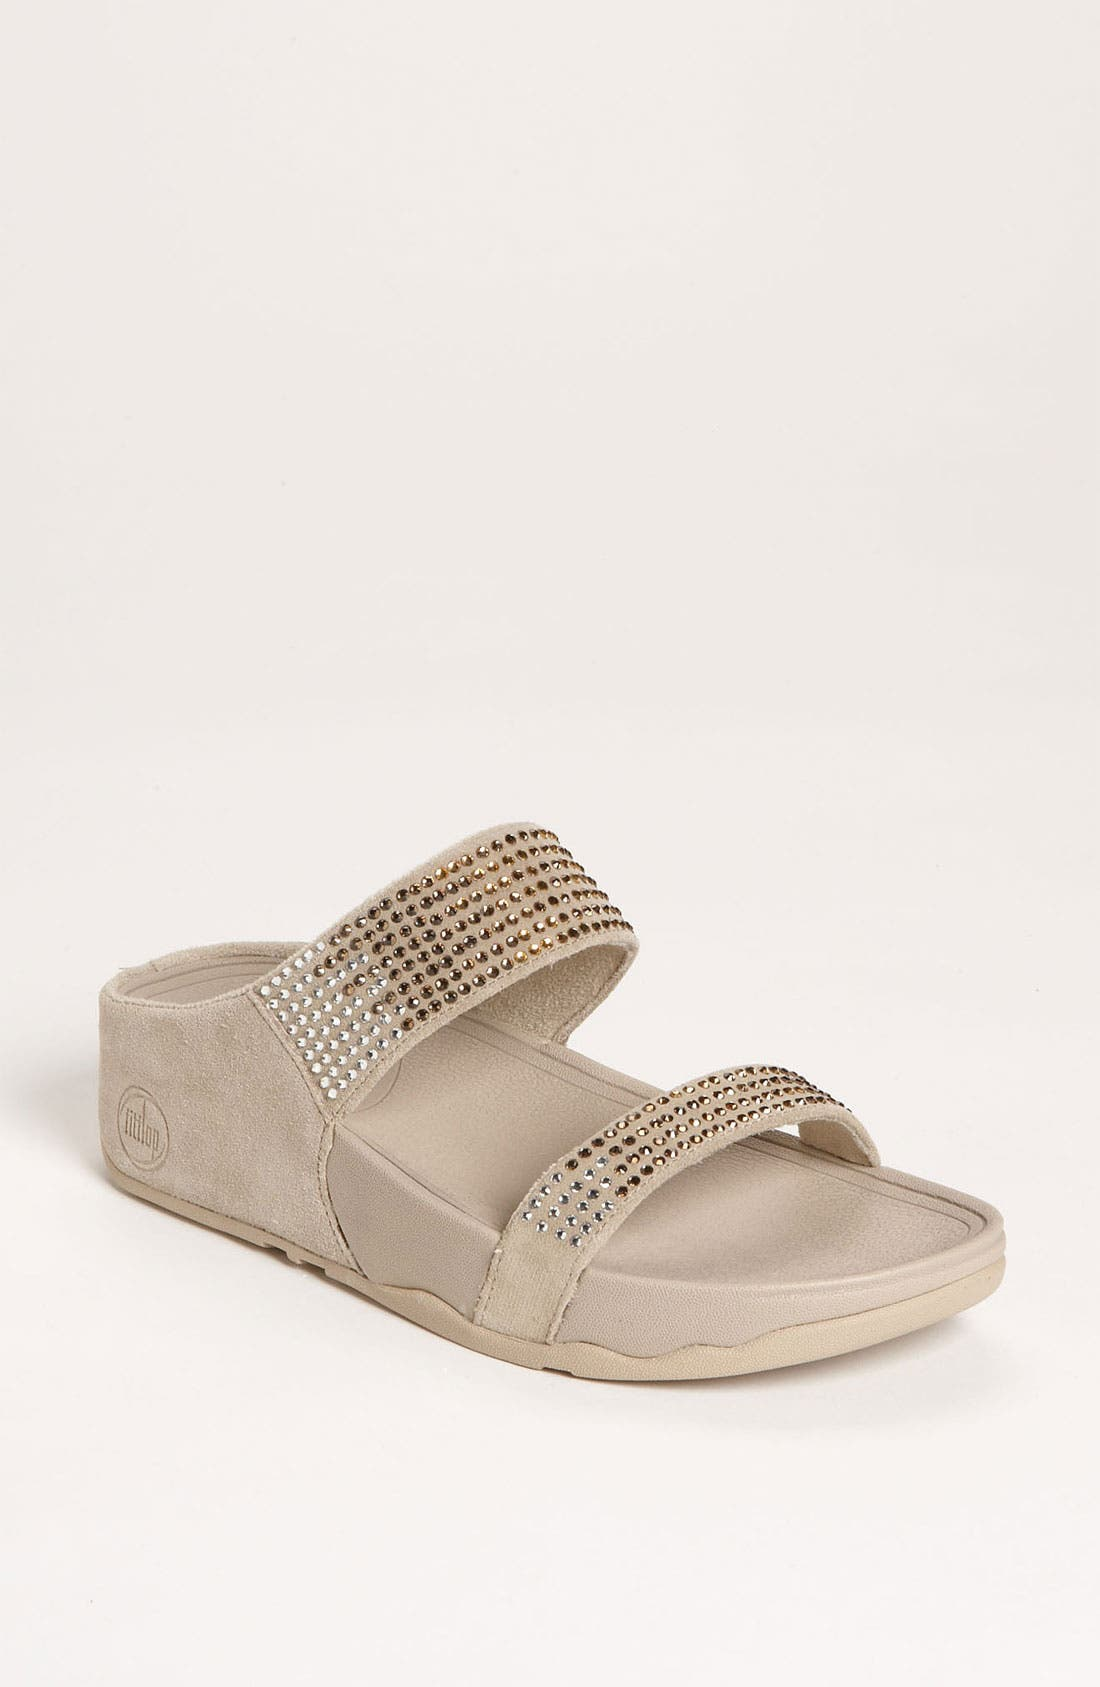 Alternate Image 1 Selected - FitFlop 'Flare™' Slide Sandal